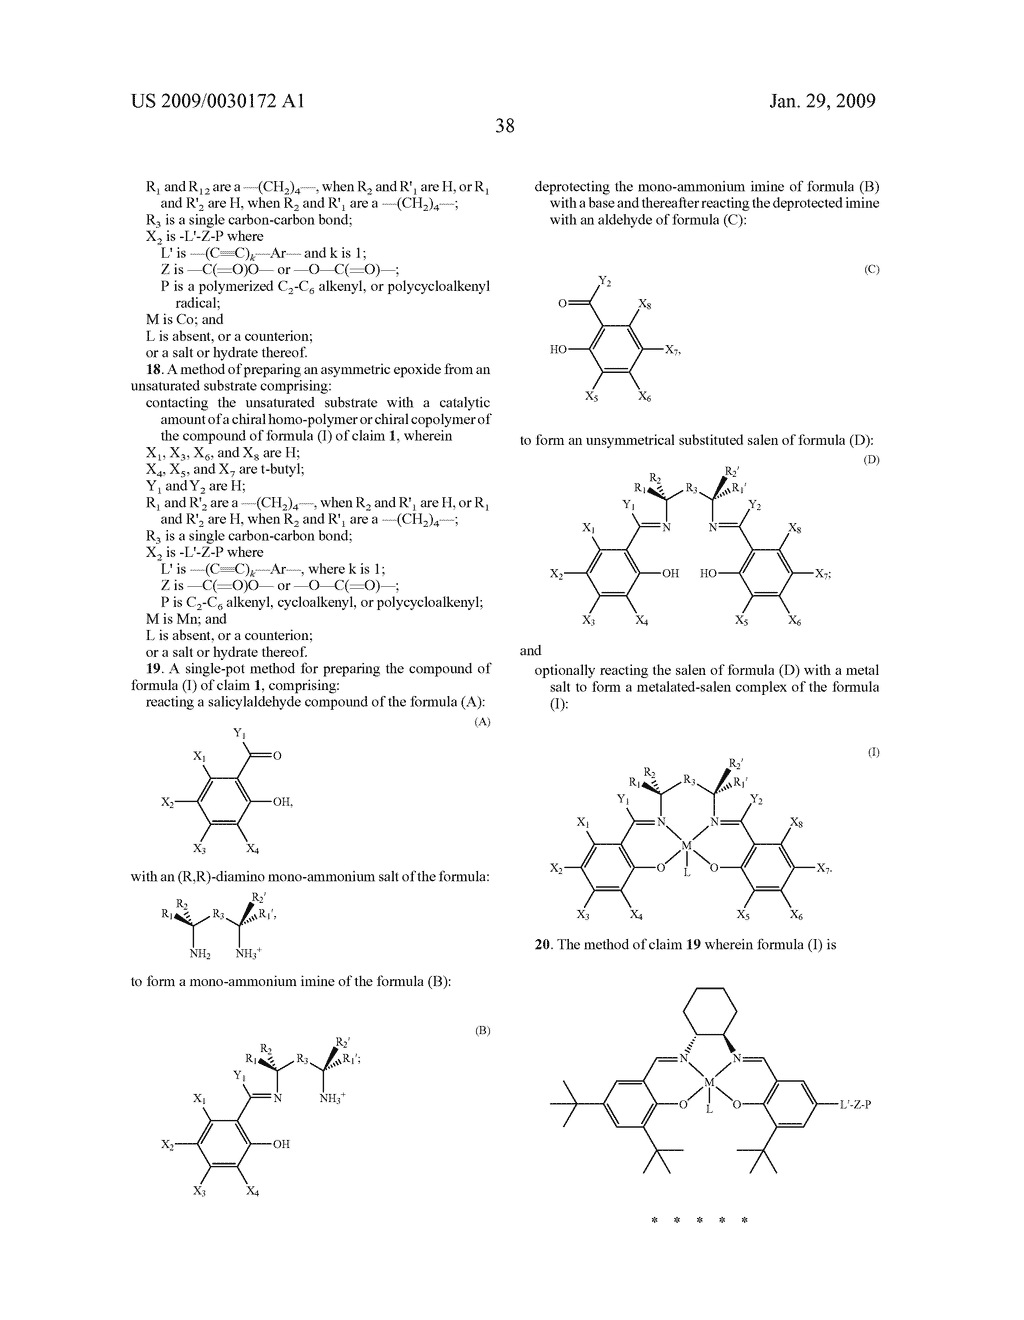 POLYMERIC SALEN COMPOUNDS AND METHODS THEREOF - diagram, schematic, and image 39